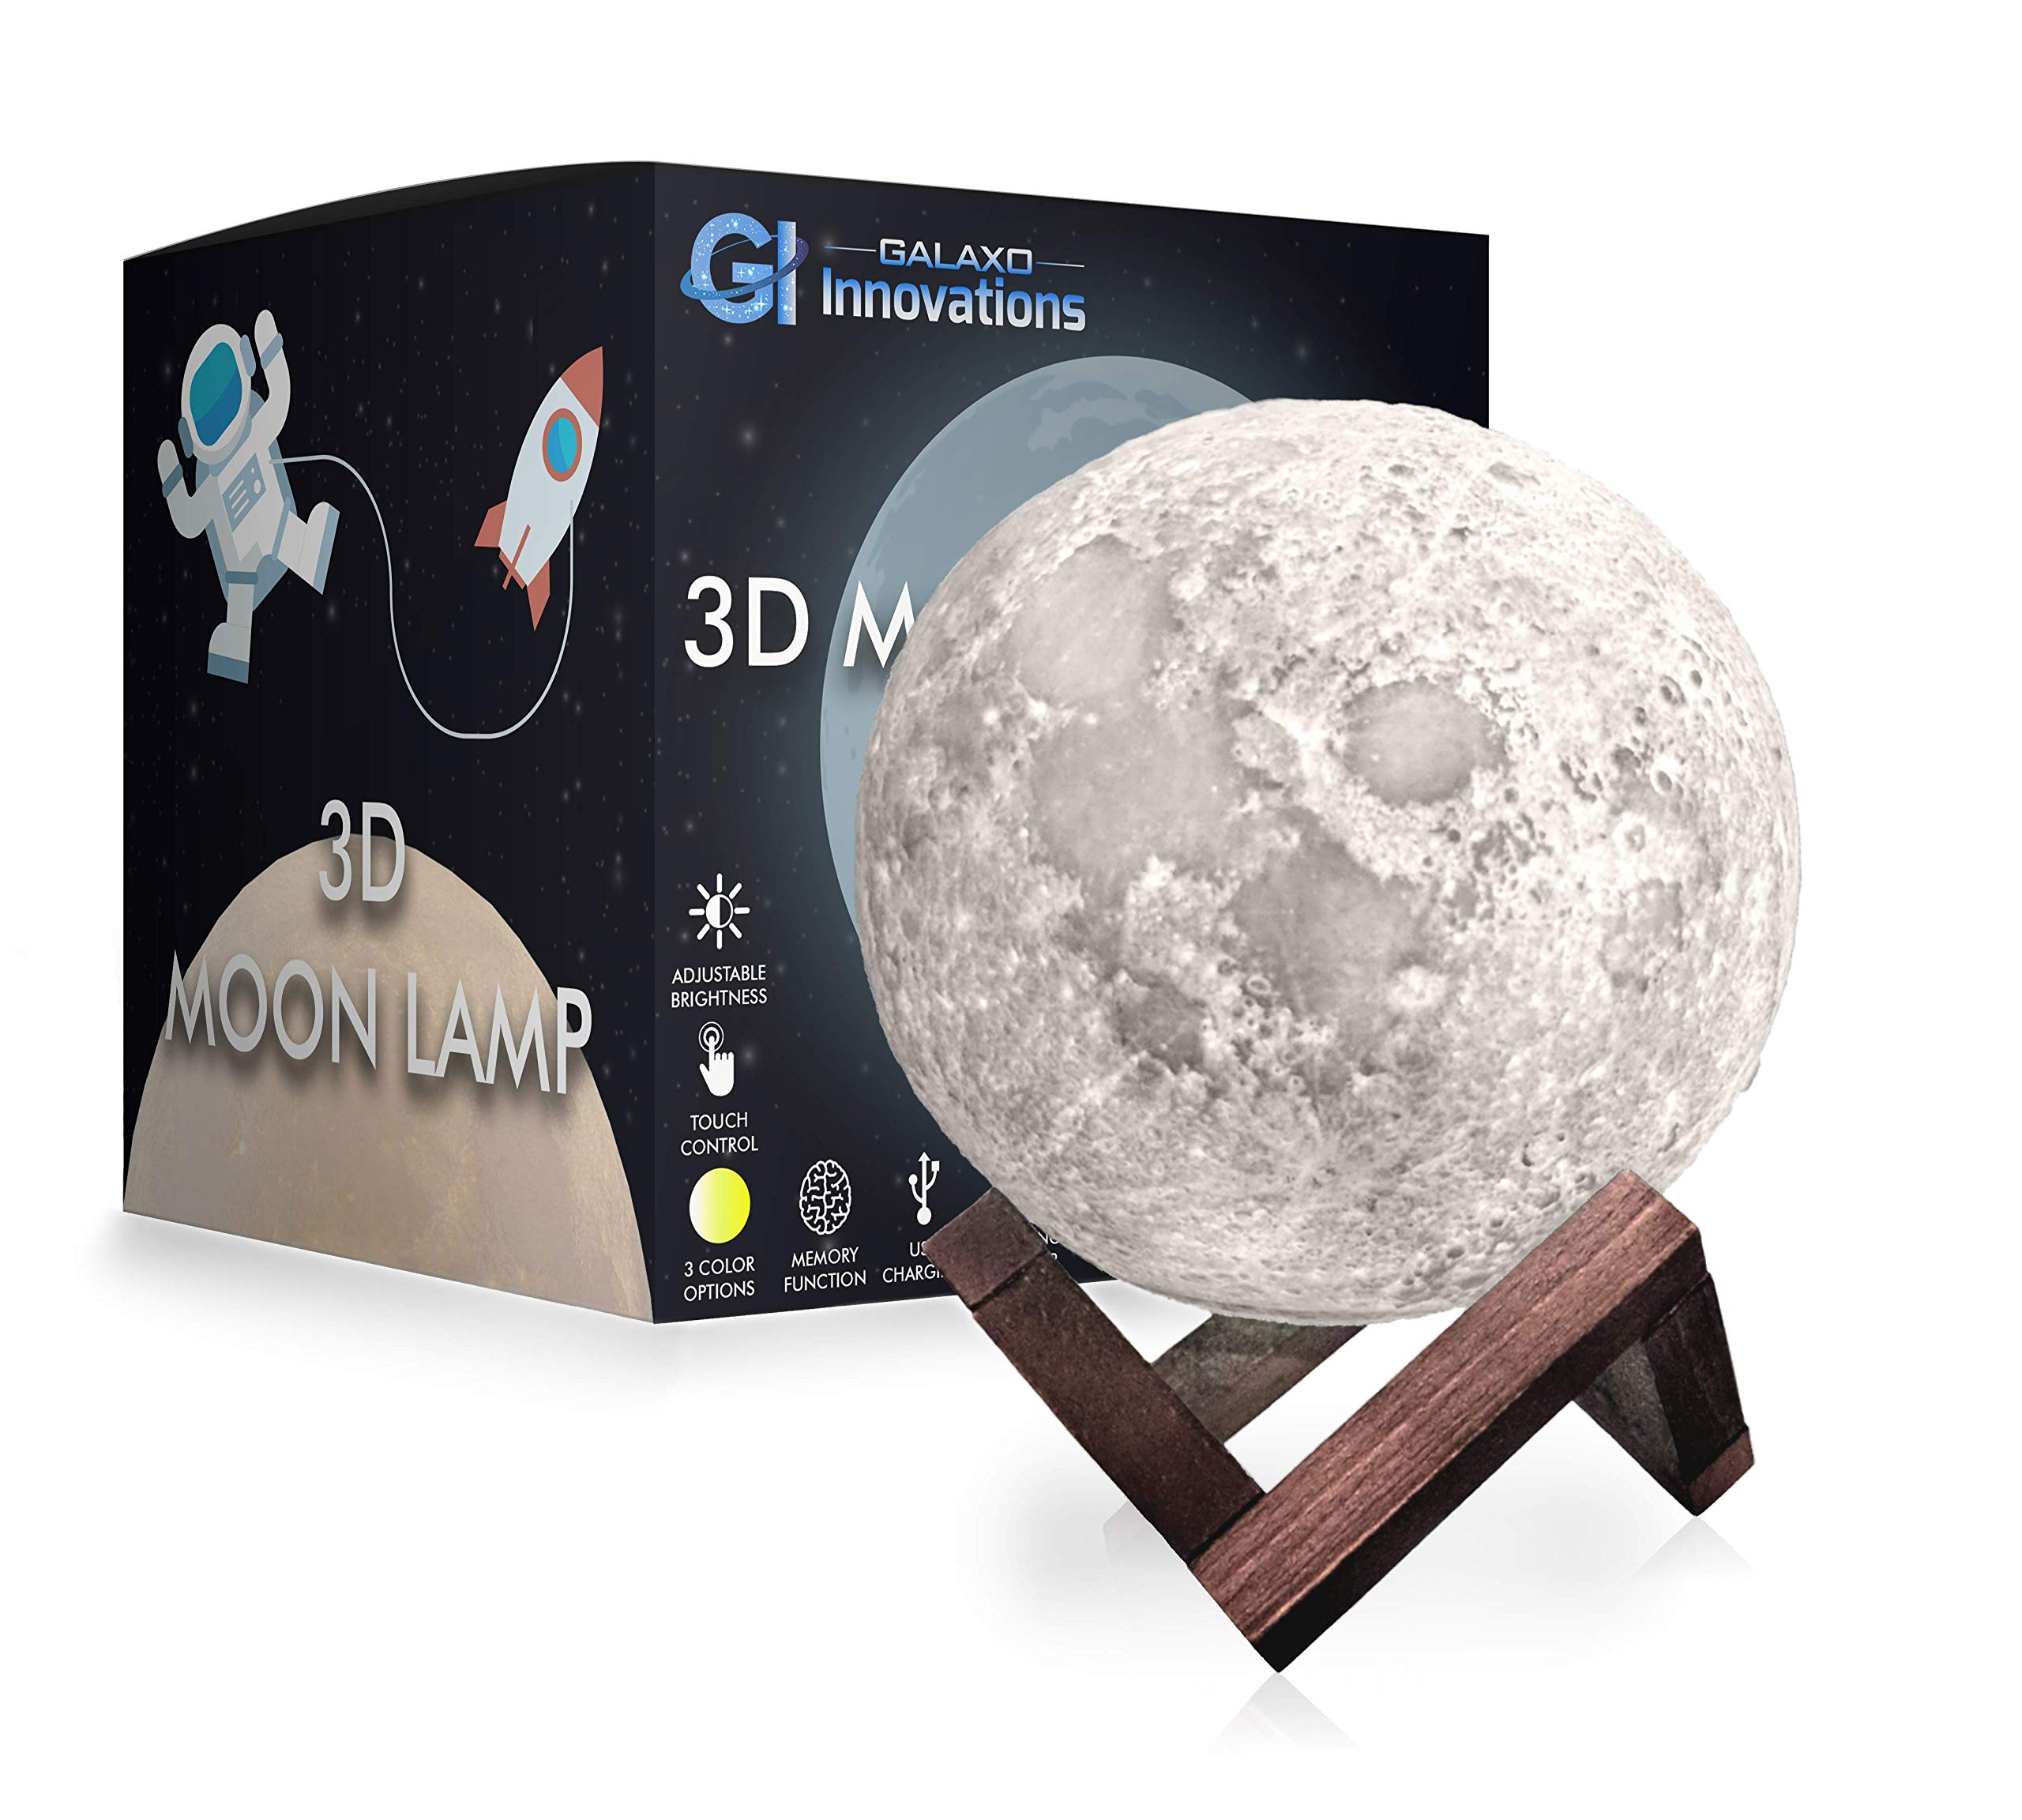 Galaxo 3D Moon Lamp 5.9 inch with Dark Wooden Stand, 3 LED Color Options, Adjustable Brightness, Touch Control, USB Charging, Gift Box, Modern Lunar Night Light